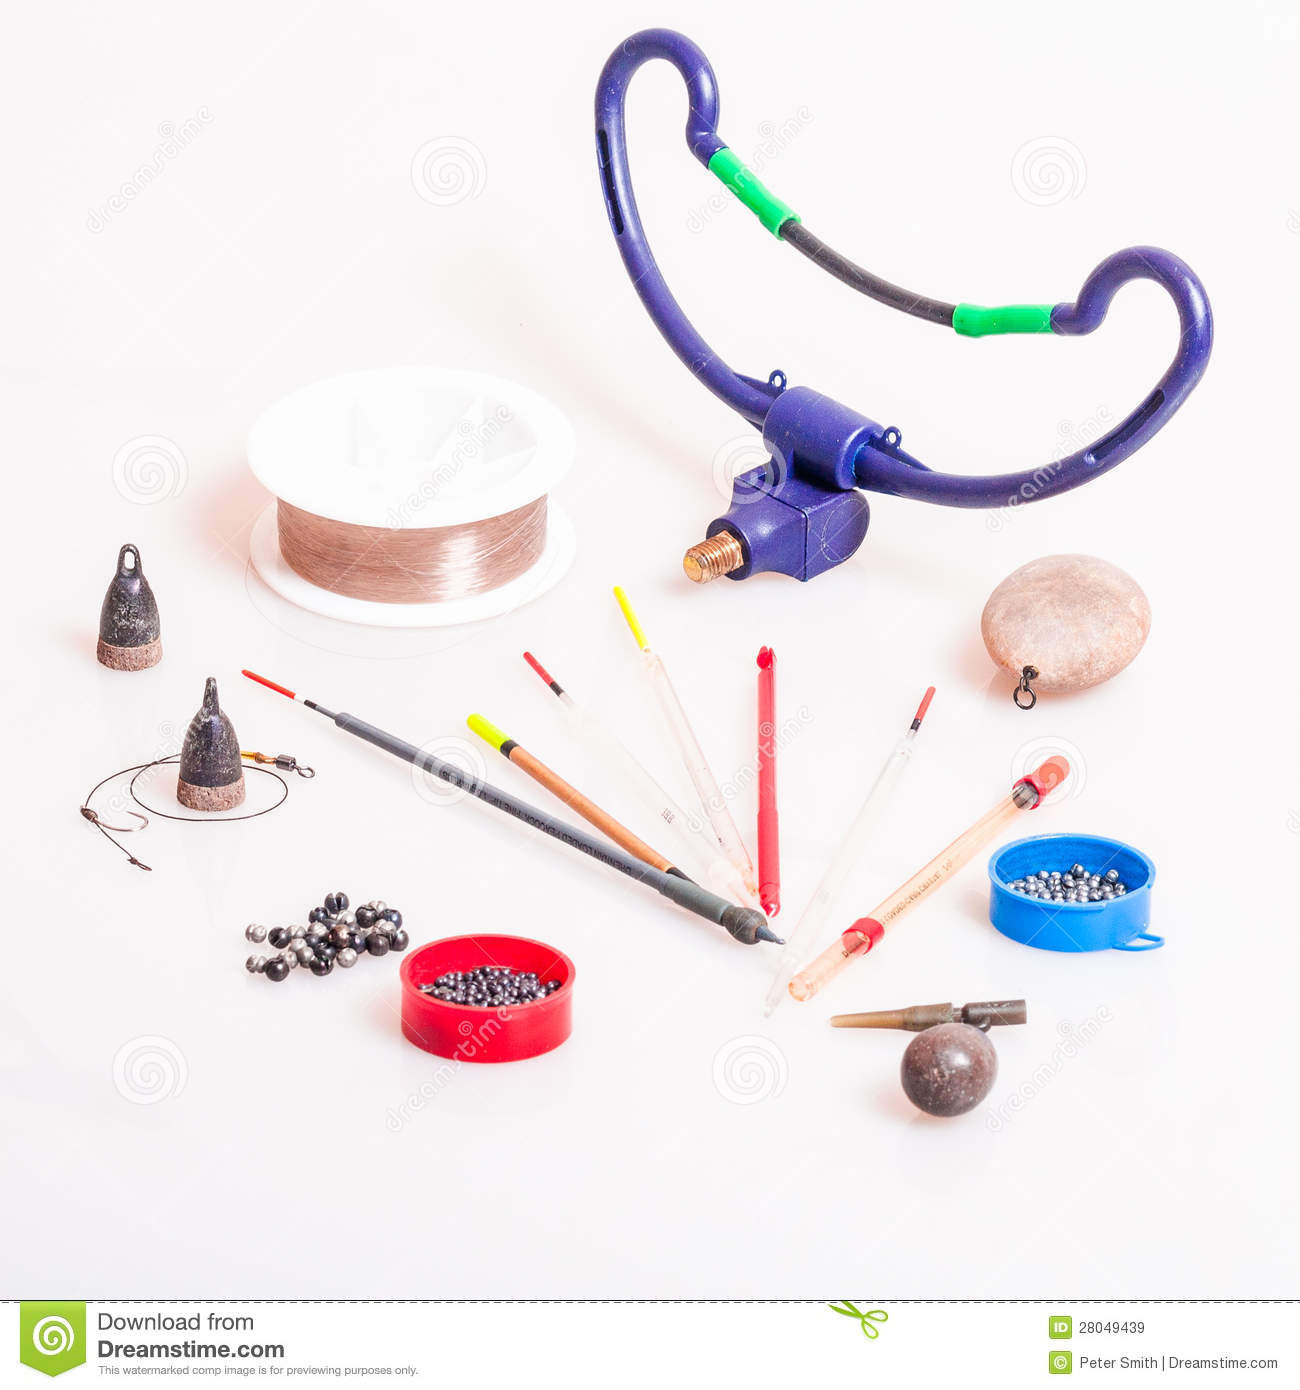 Fishing tackle royalty free stock images image 28049439 for How to get free fishing gear